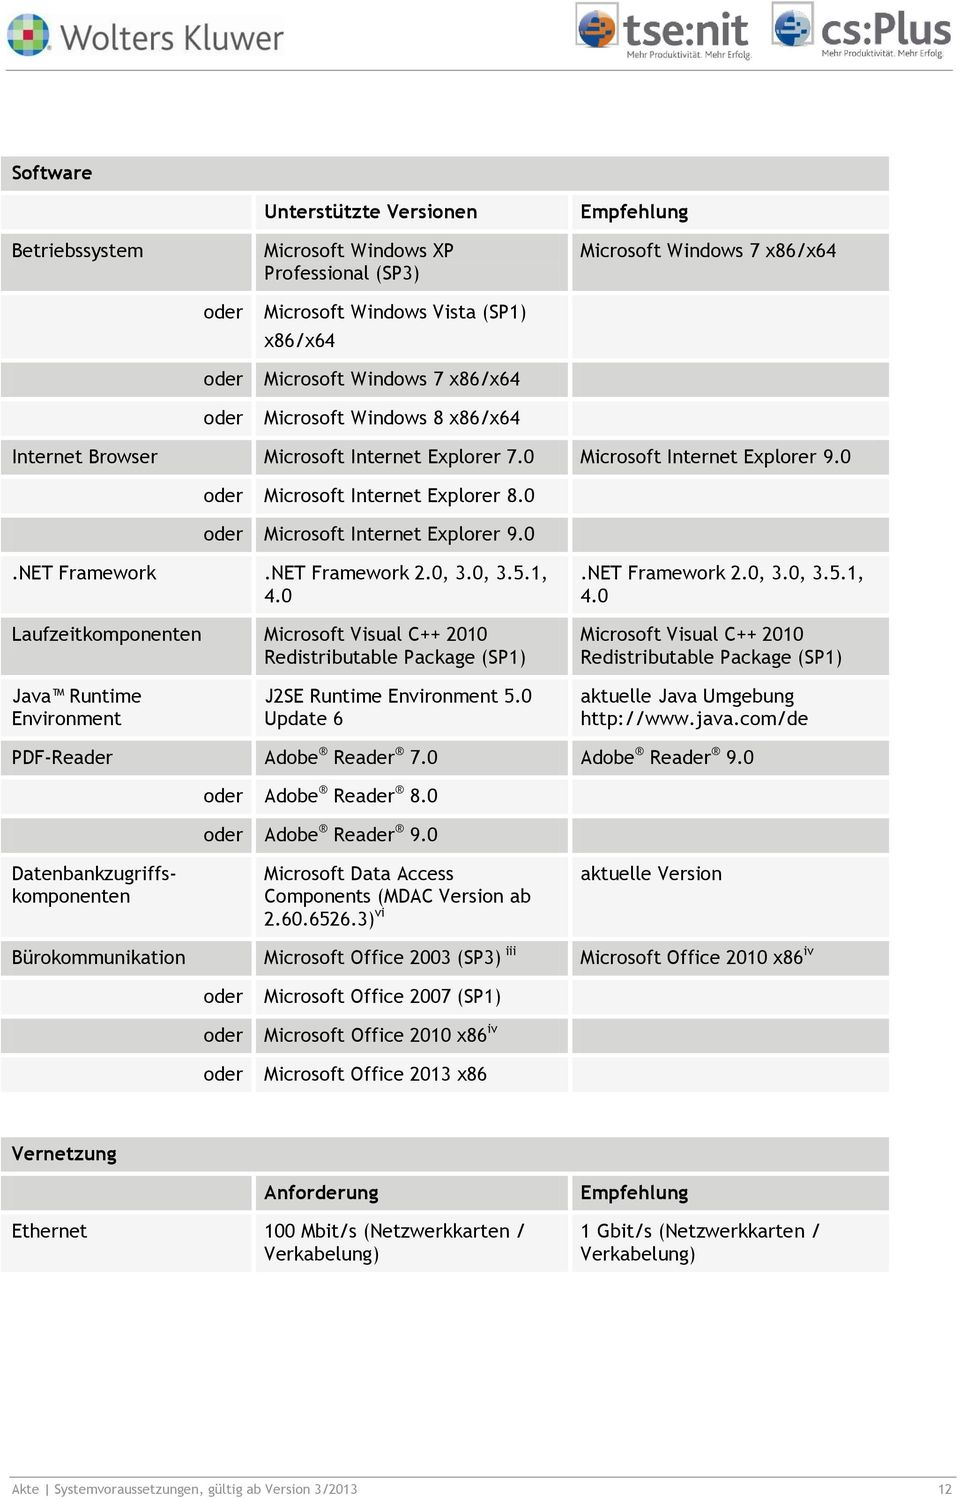 1, 4.0 Laufzeitkomponenten Microsoft Visual C++ 2010 Redistributable Package (SP1).NET Framework 2.0, 3.0, 3.5.1, 4.0 Microsoft Visual C++ 2010 Redistributable Package (SP1) Java Runtime Environment J2SE Runtime Environment 5.